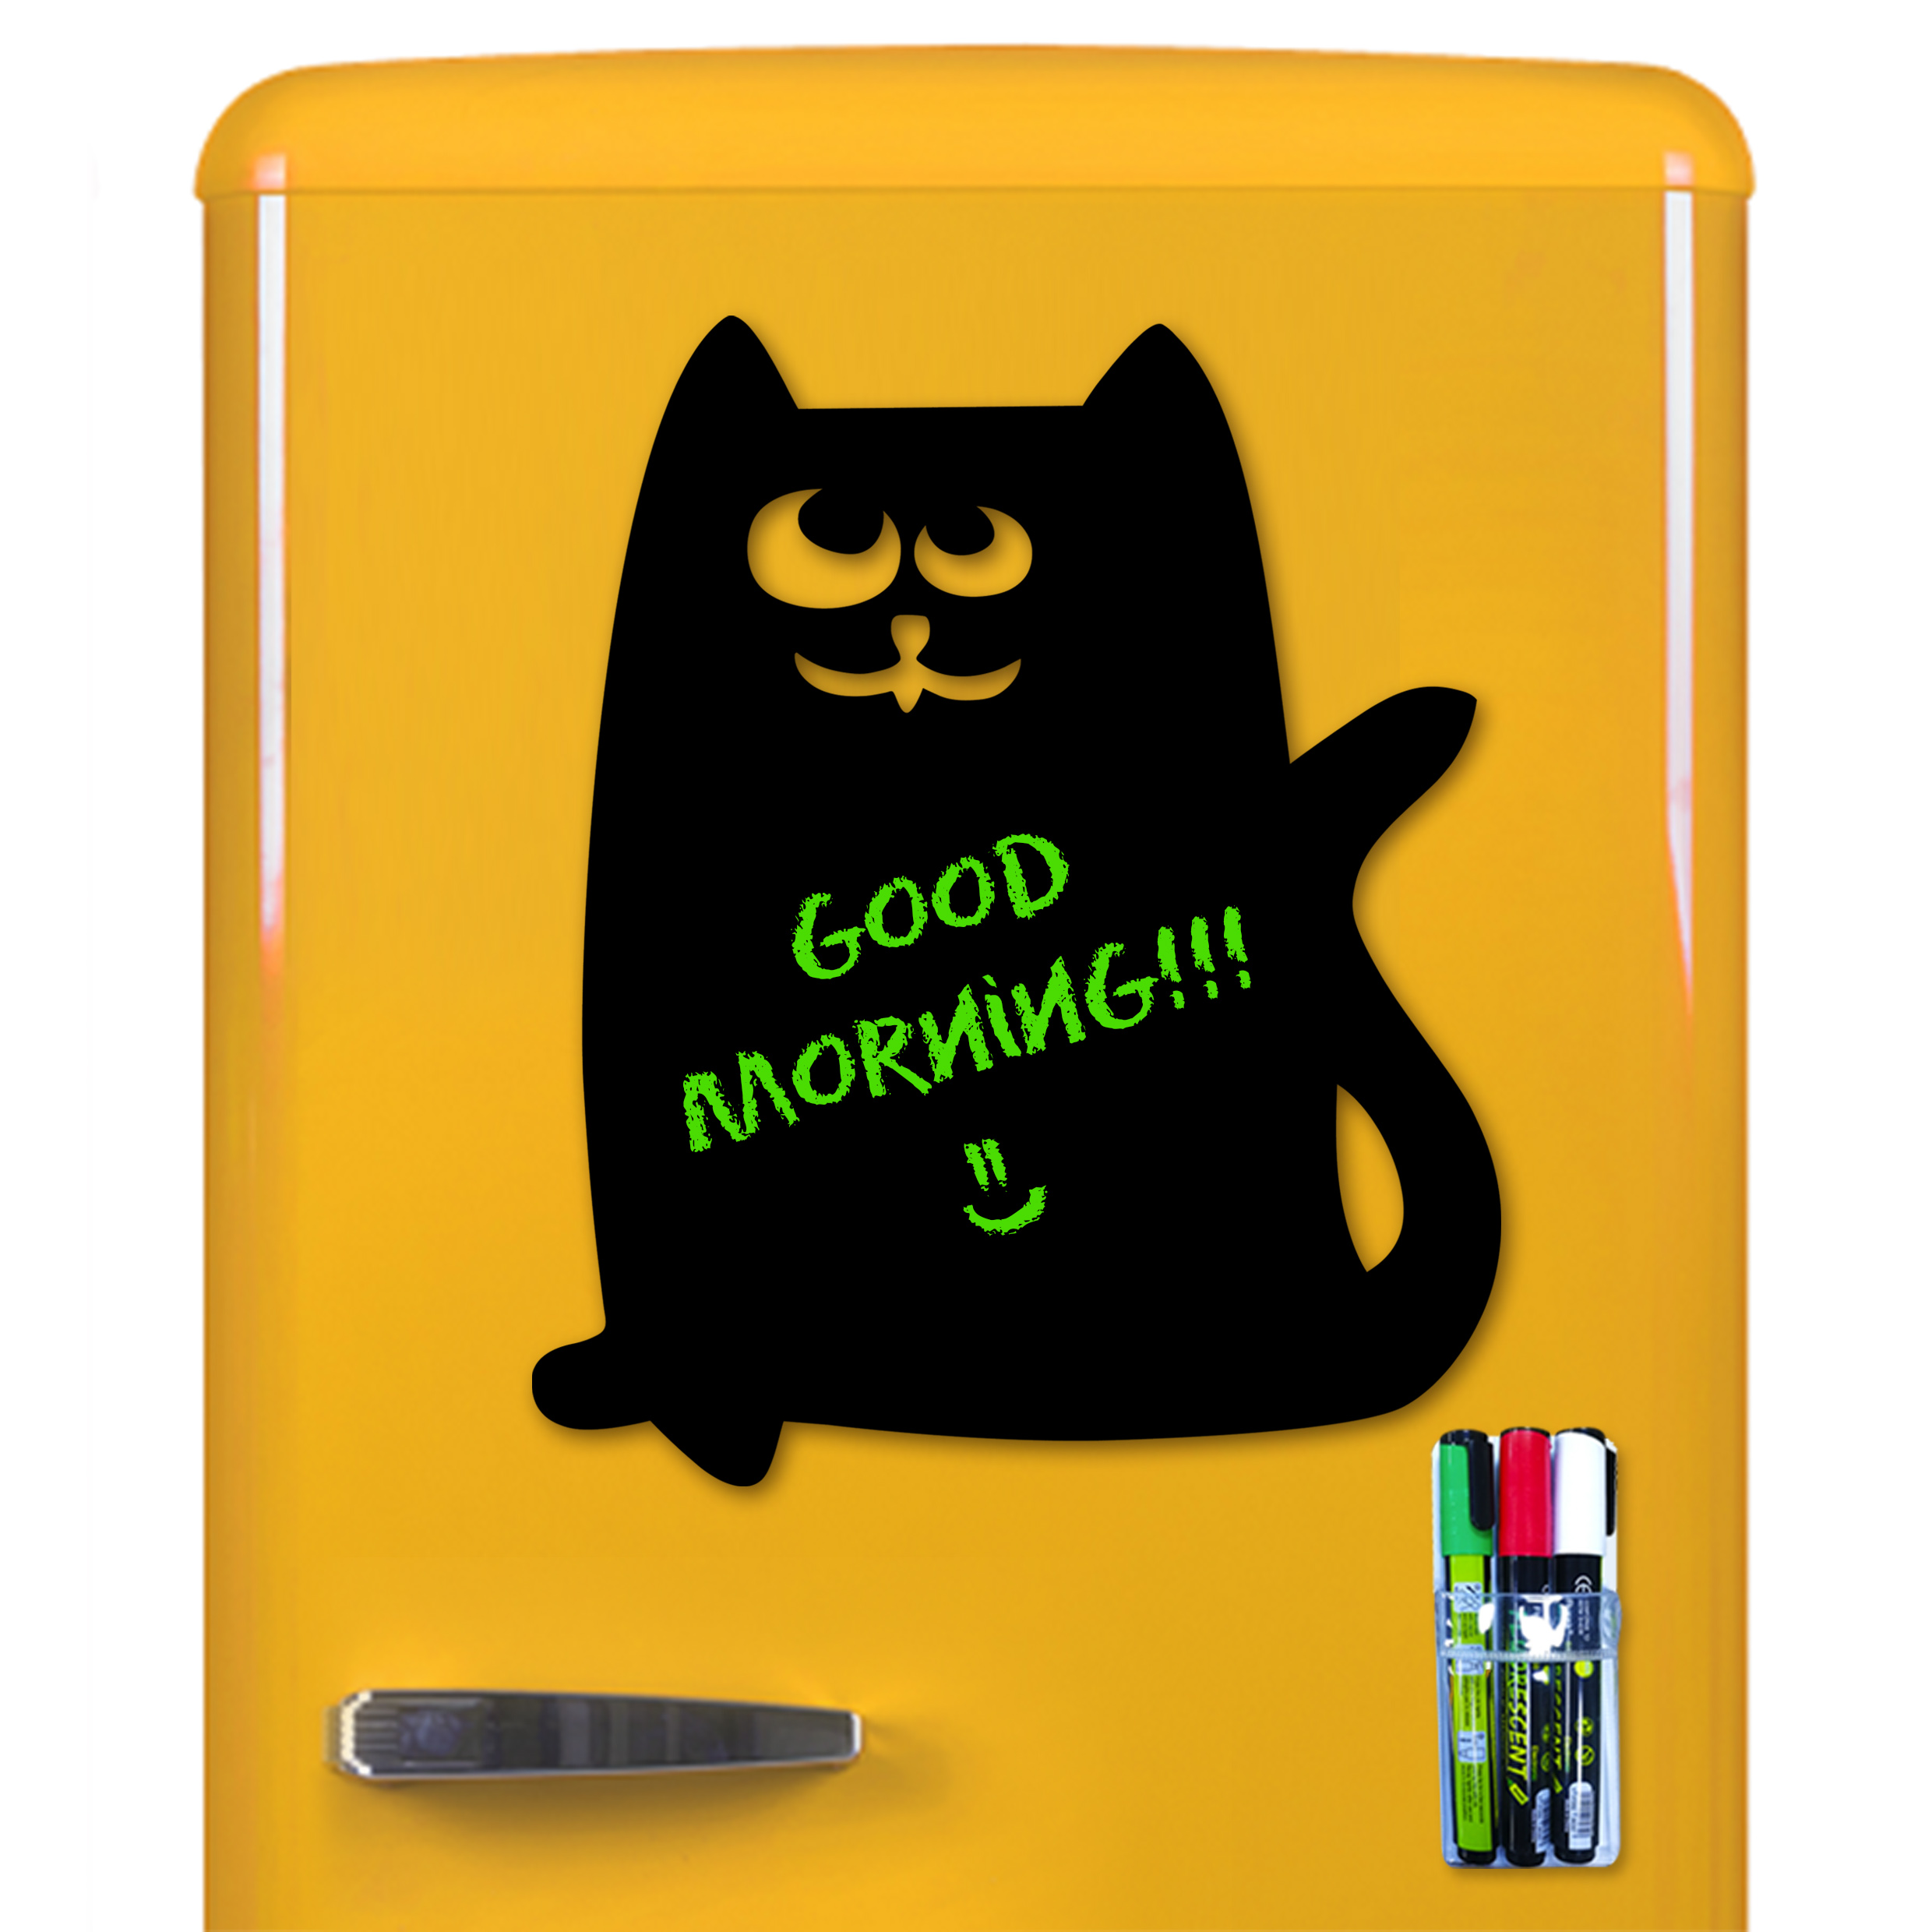 "Cute Magnetic Black Board for Fridge - Kitchen Refrigerator Memo Message Boards Dry-Erase with Markers and Holder - Decorative Cat Reminder Chalkboard Easy Erasable for Kids or Office - Size 15"" x 11"""